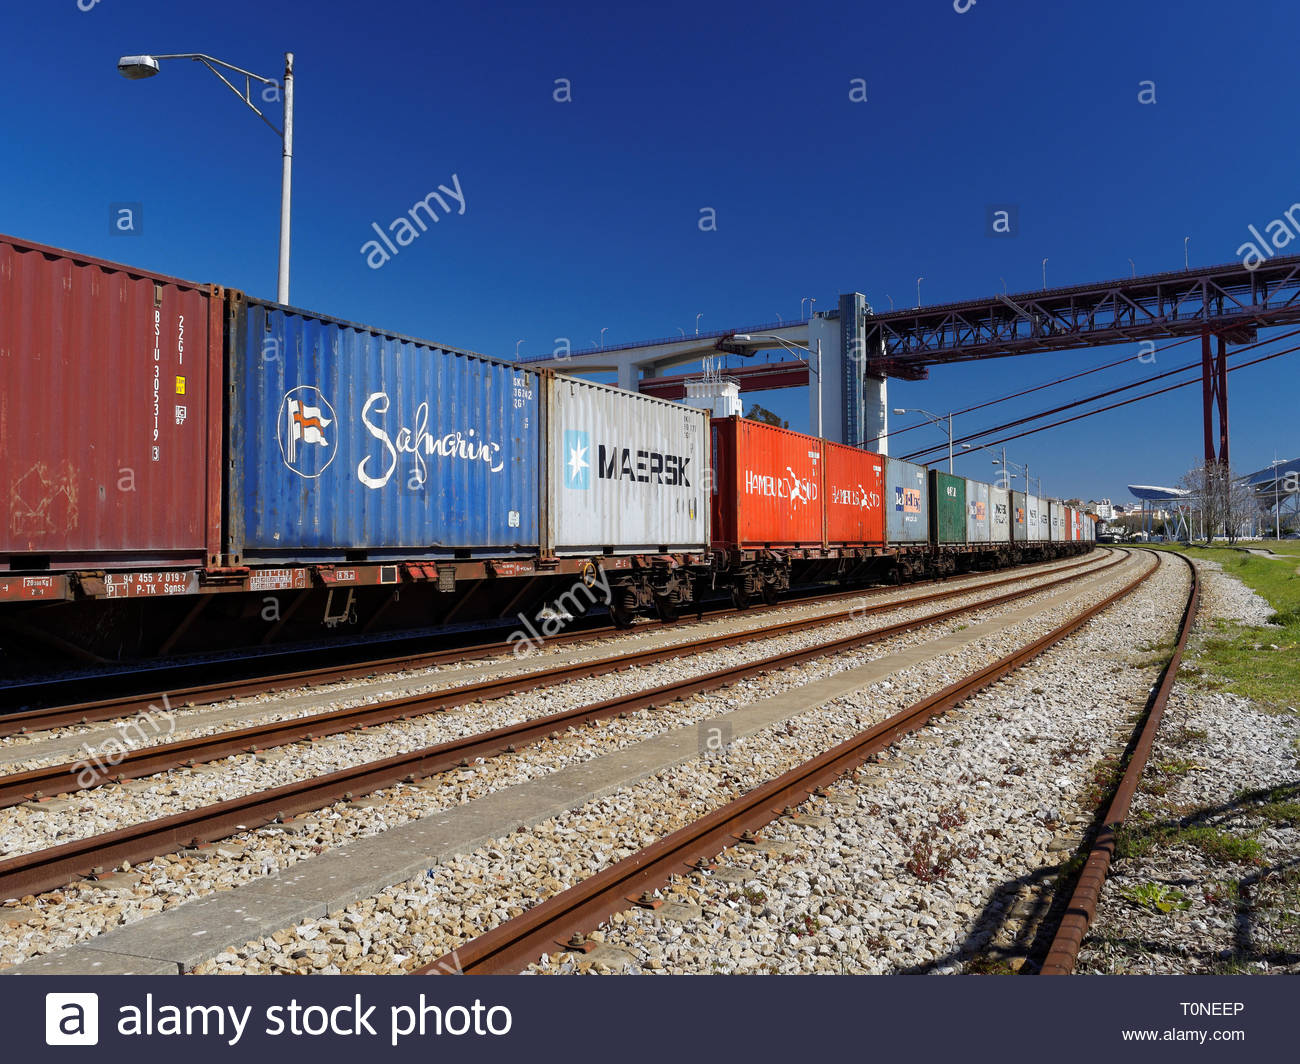 Metal shipping containers loaded on rail stock, Lisbon, Portugal - Stock Image